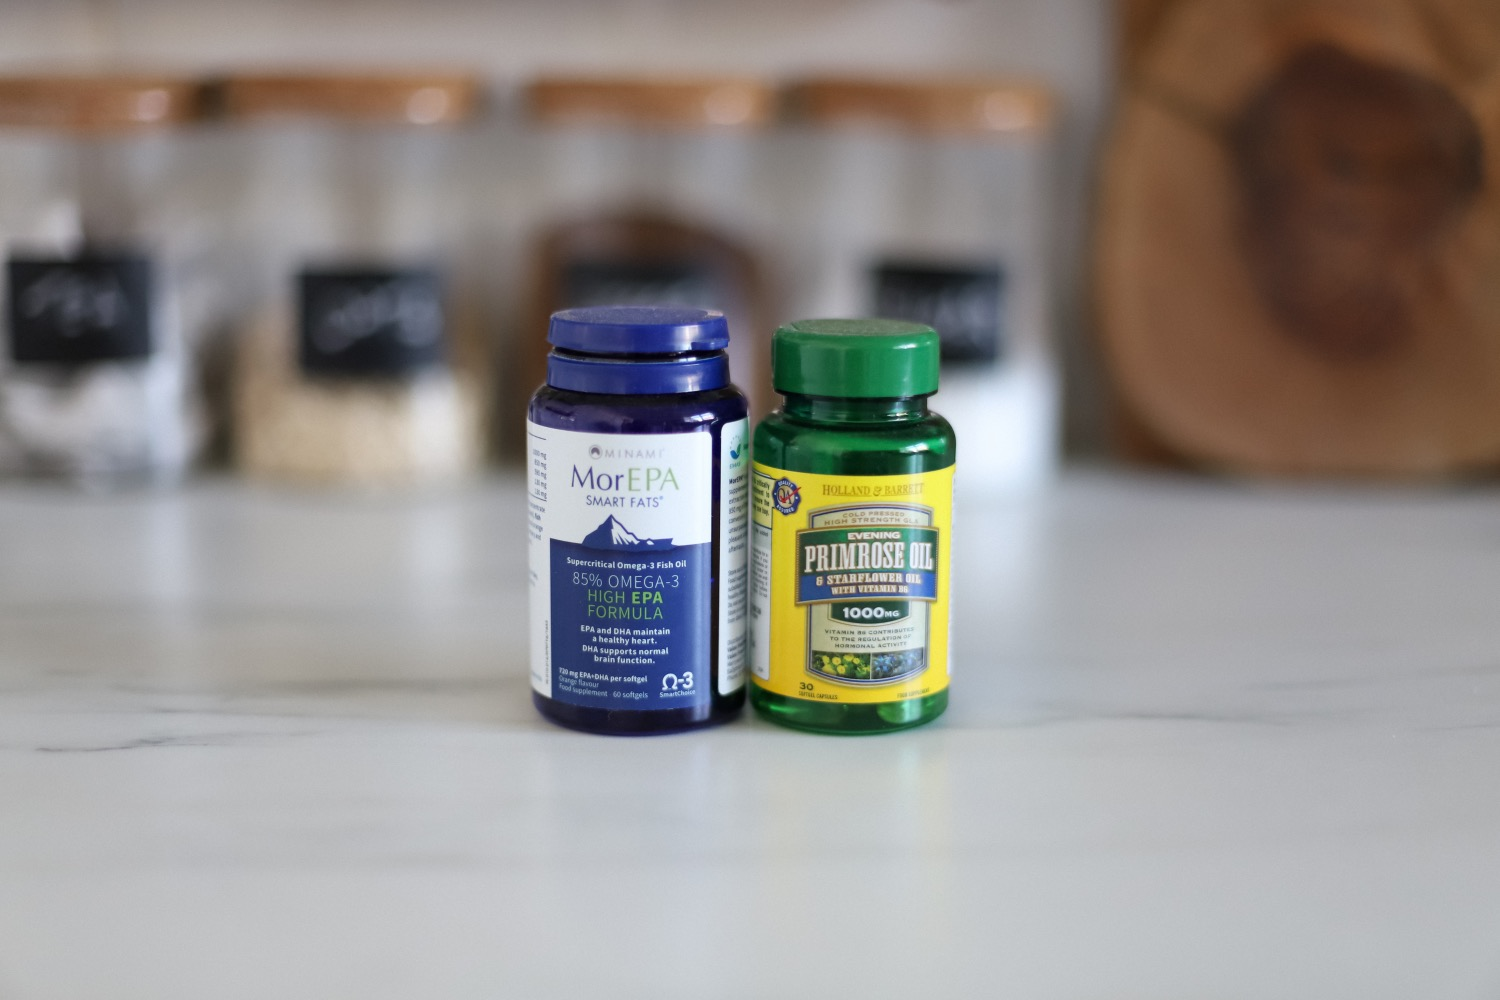 8 SUPPLEMENTS I TAKE EVERY DAY